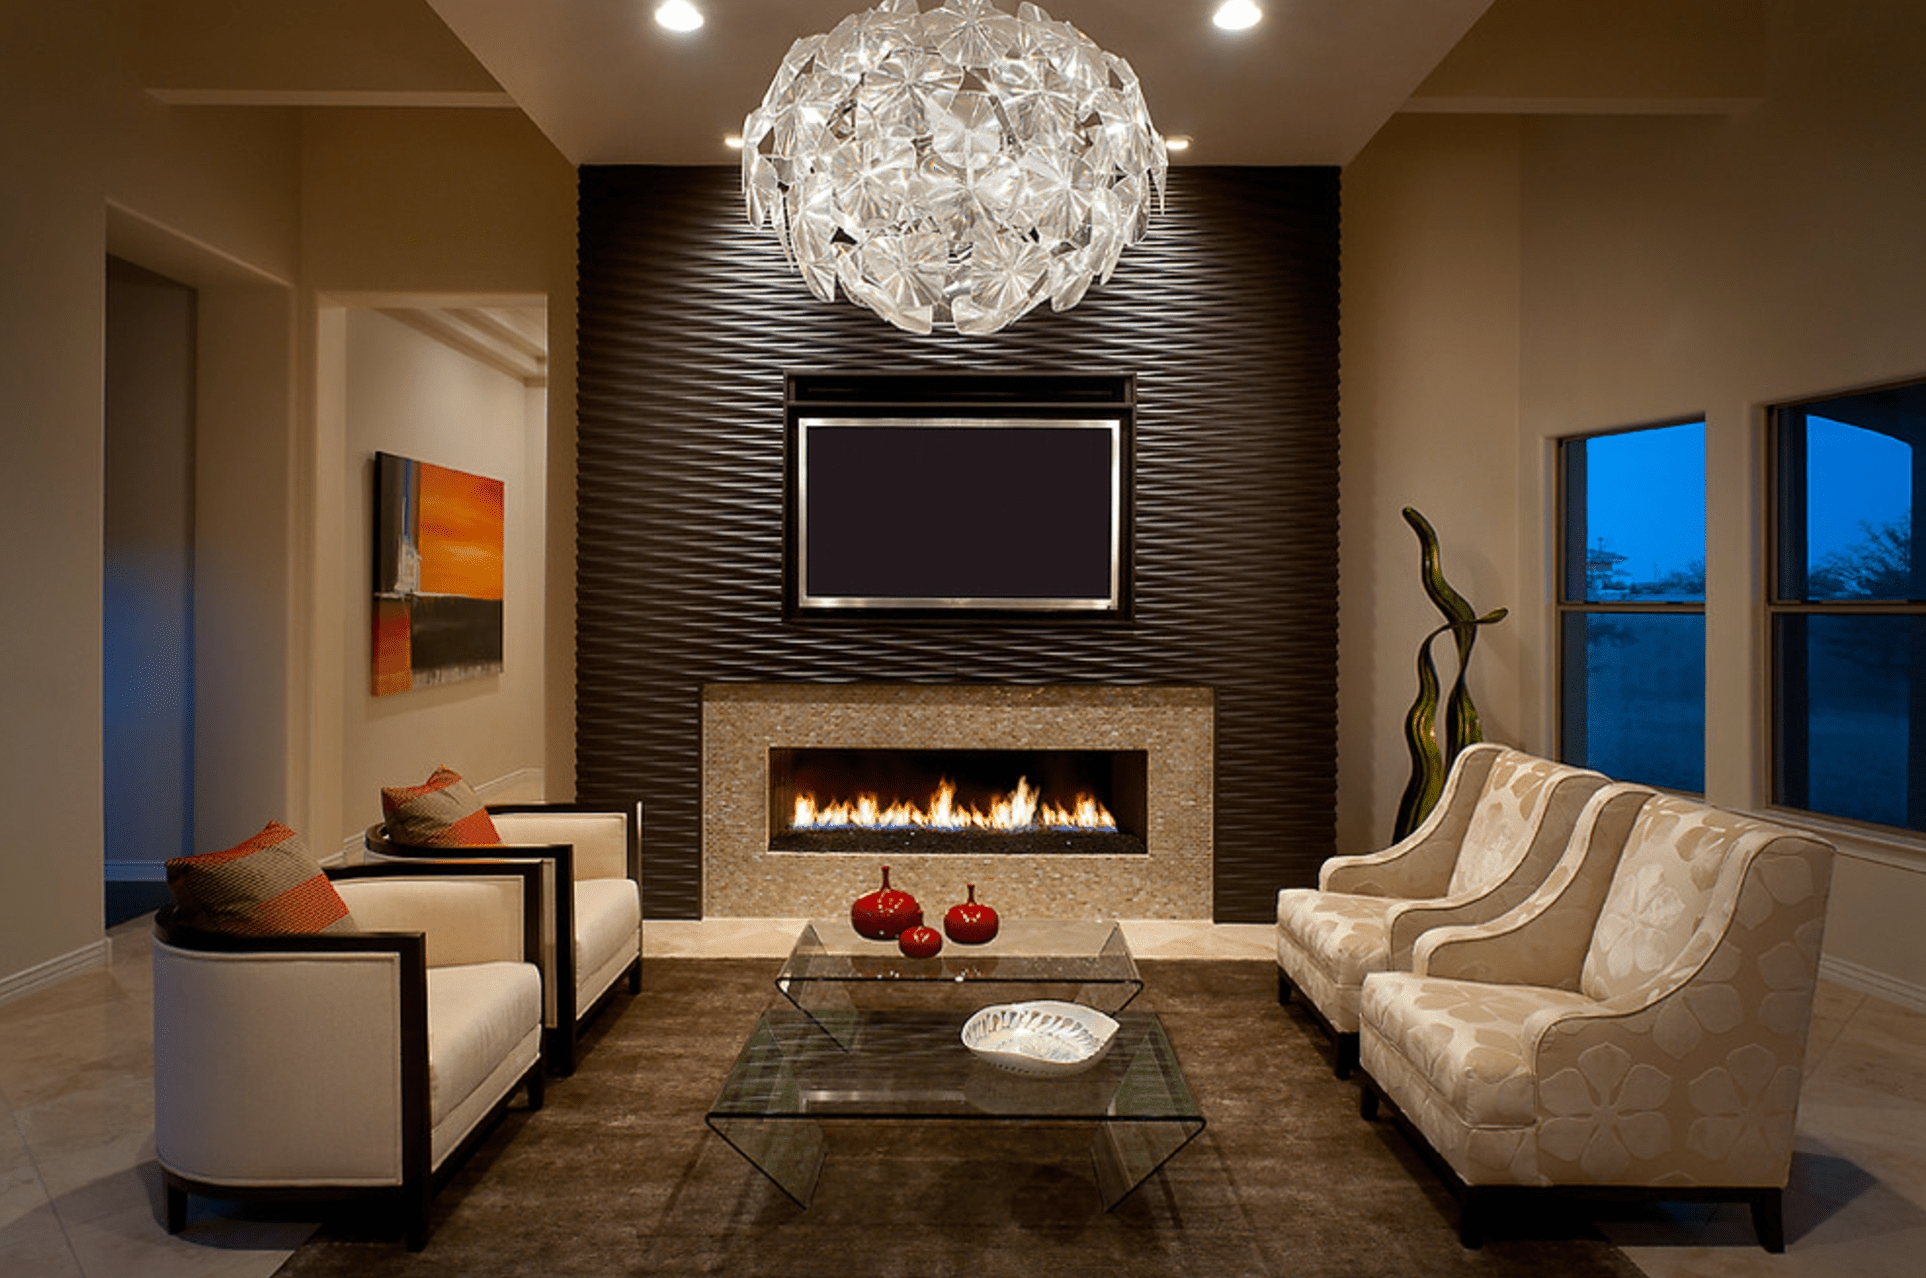 16 Living Rooms With Accent Walls Intended For Most Up To Date Wallpaper Living Room Wall Accents (View 3 of 15)